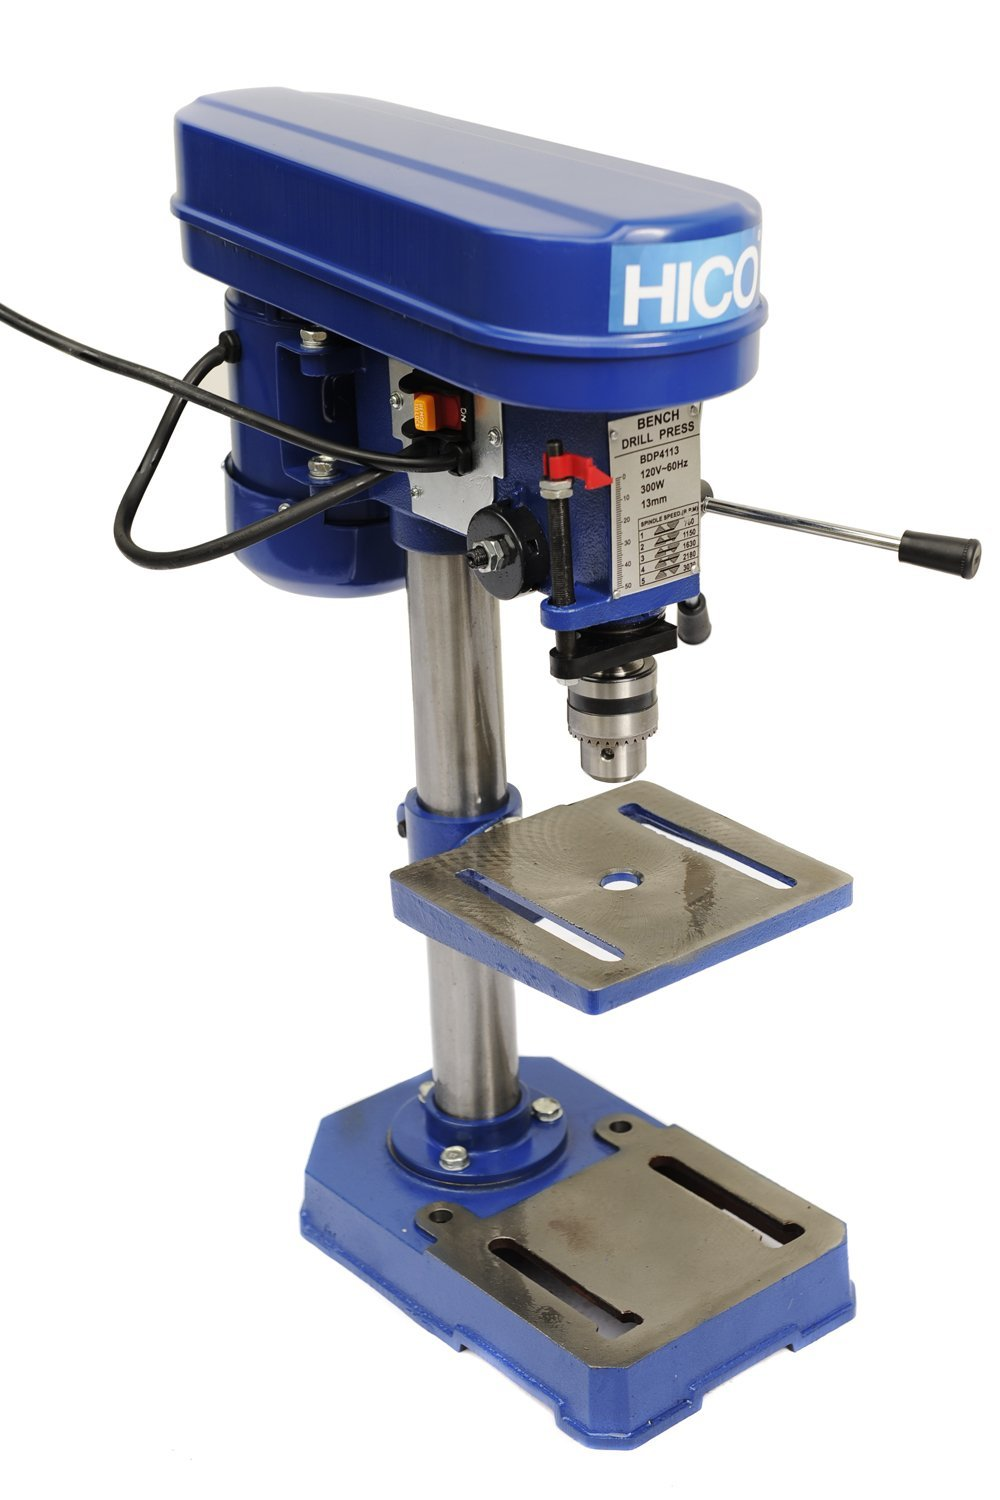 HICO-DP4113 8-Inch Bench Top Drill Press 5 Speed